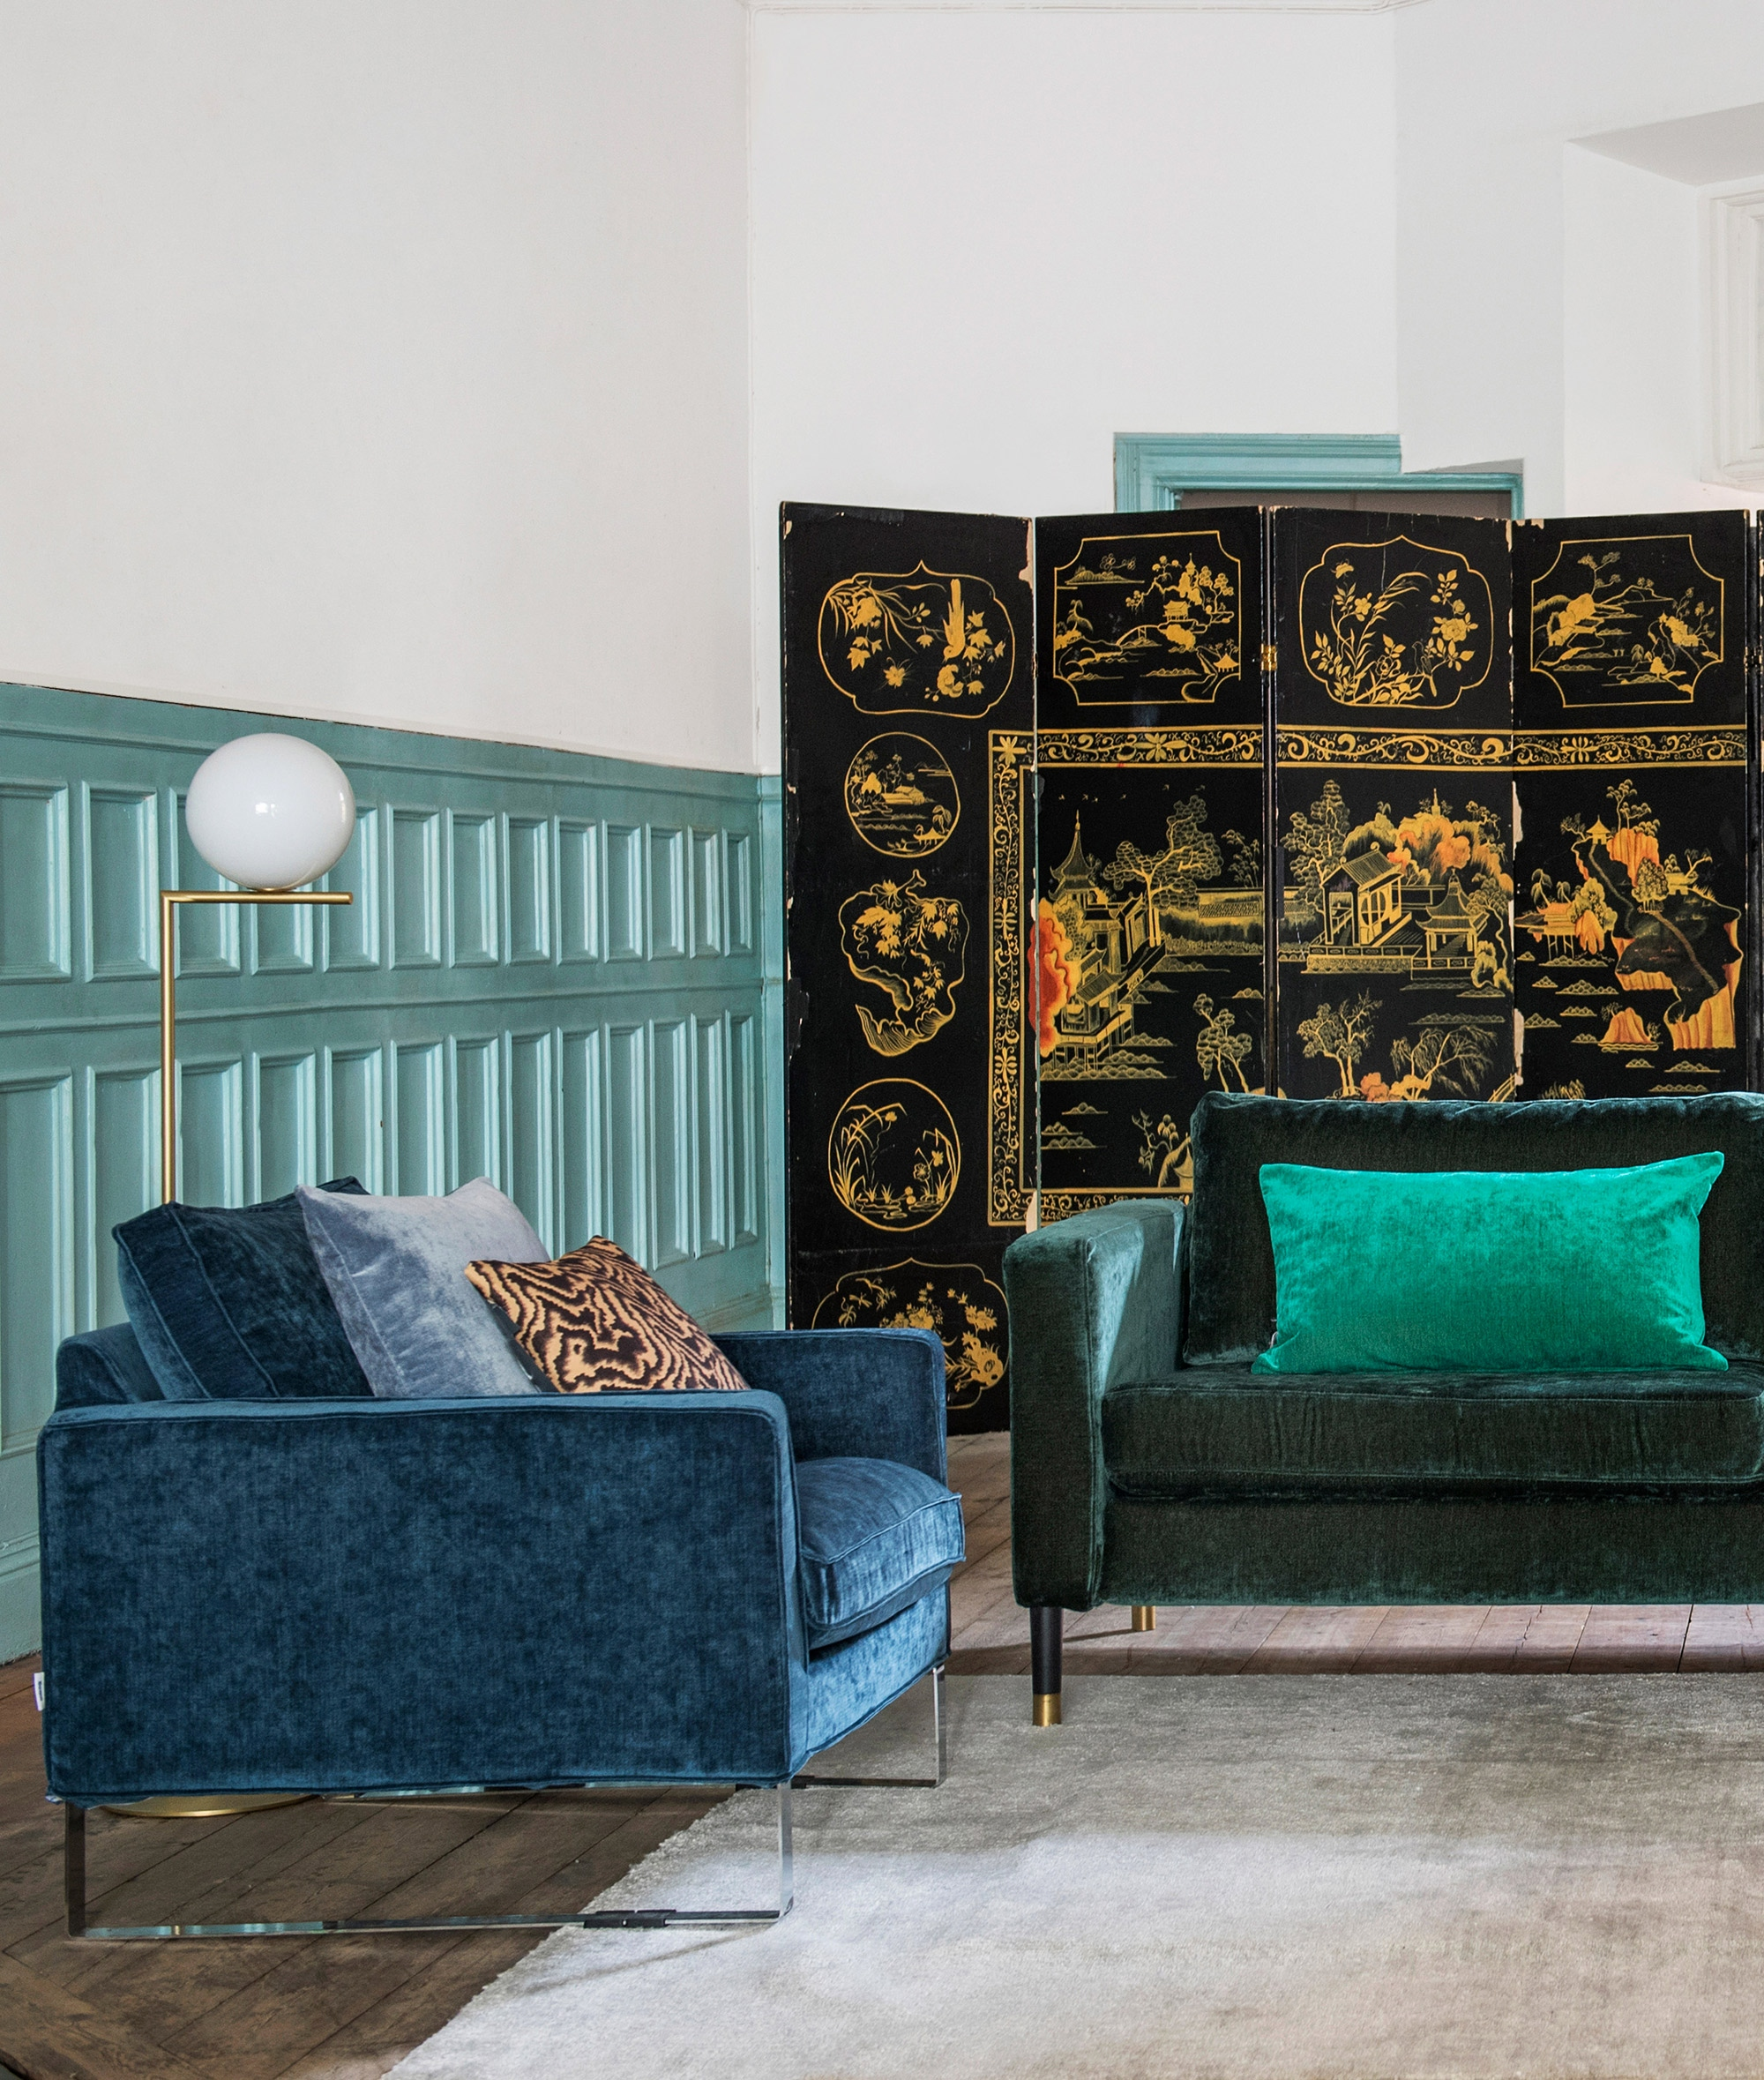 best hunter green velvet sofa couches ideas lovely dark sophistication blue armchair ikea mellby corner group throws support air accent chairs toronto miami sheridan quilt covers